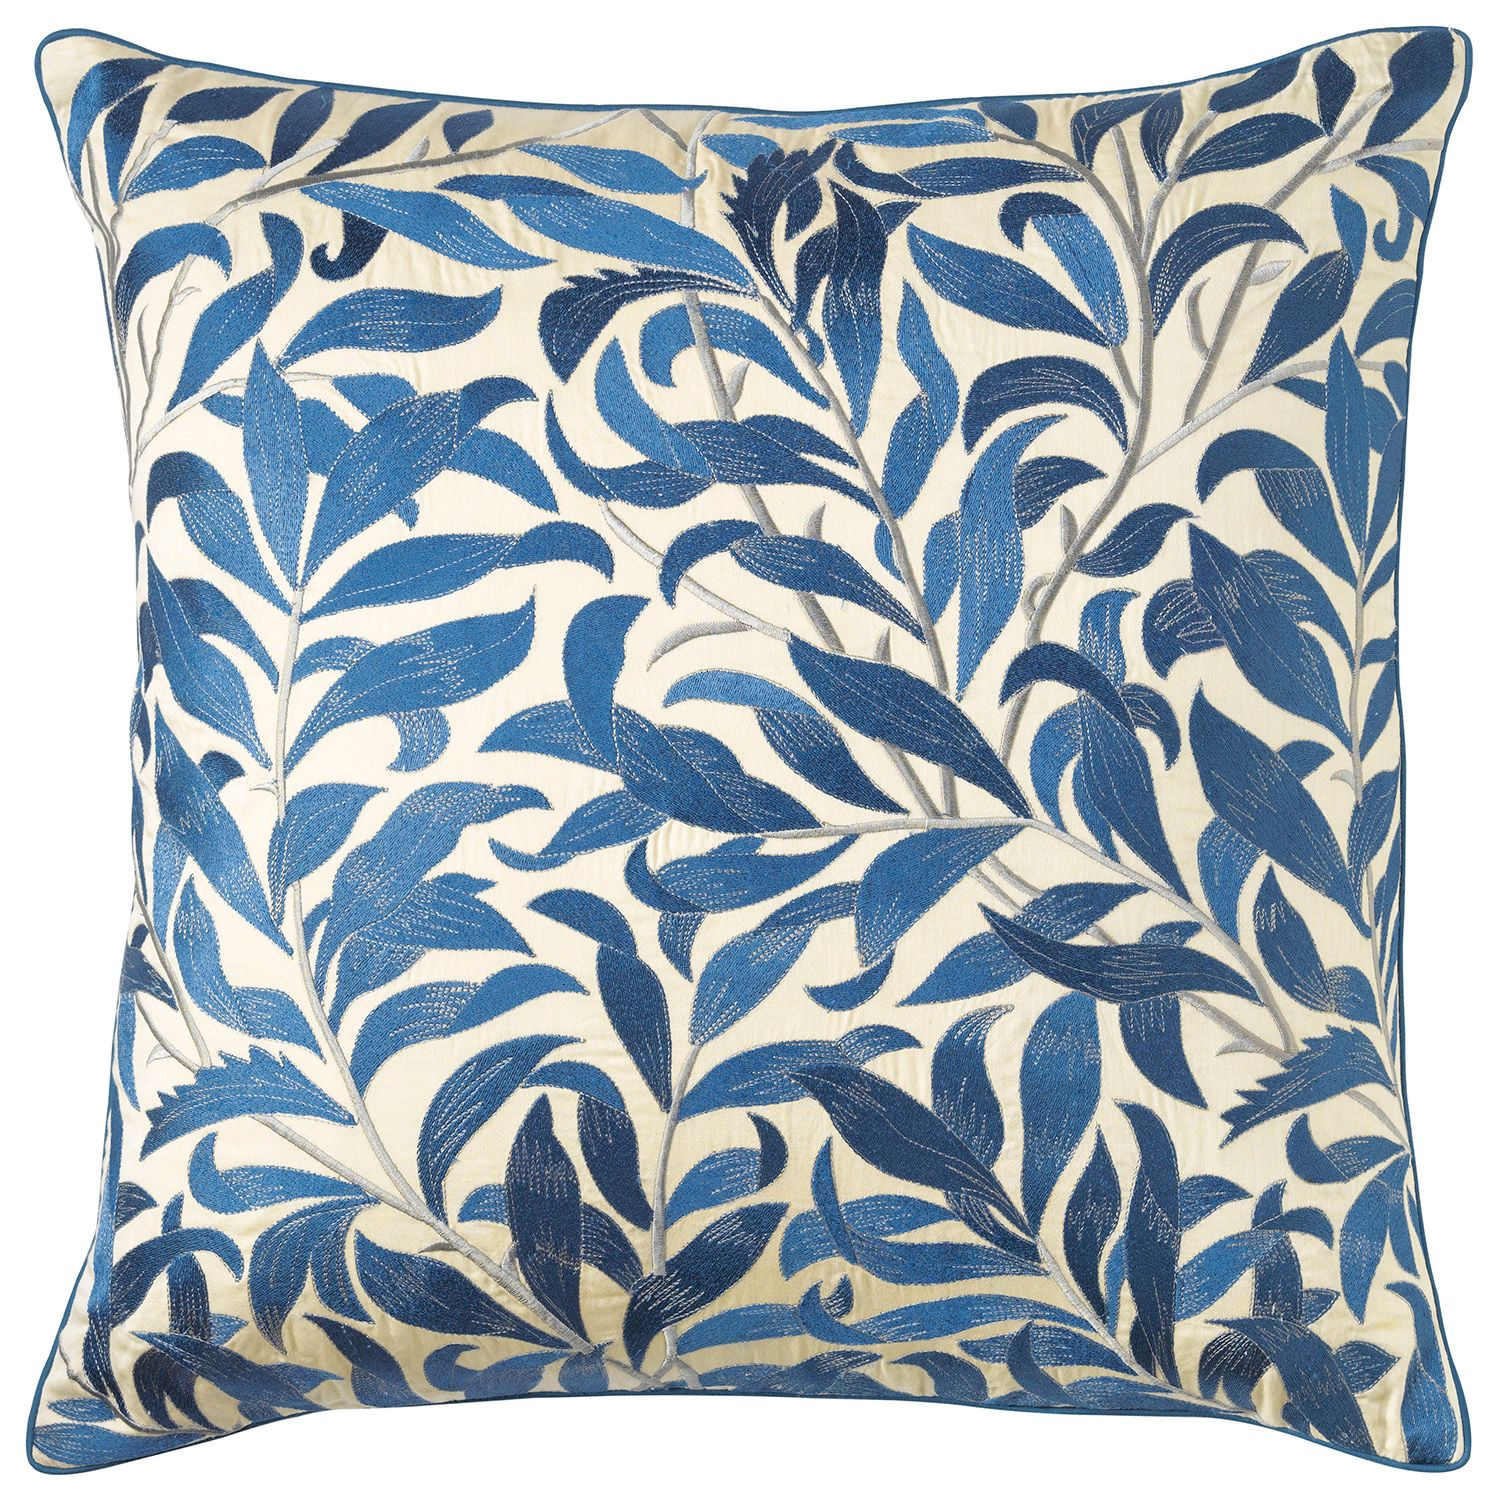 rugs blue home kas p the pillows decorative pillow depot waves throw blues